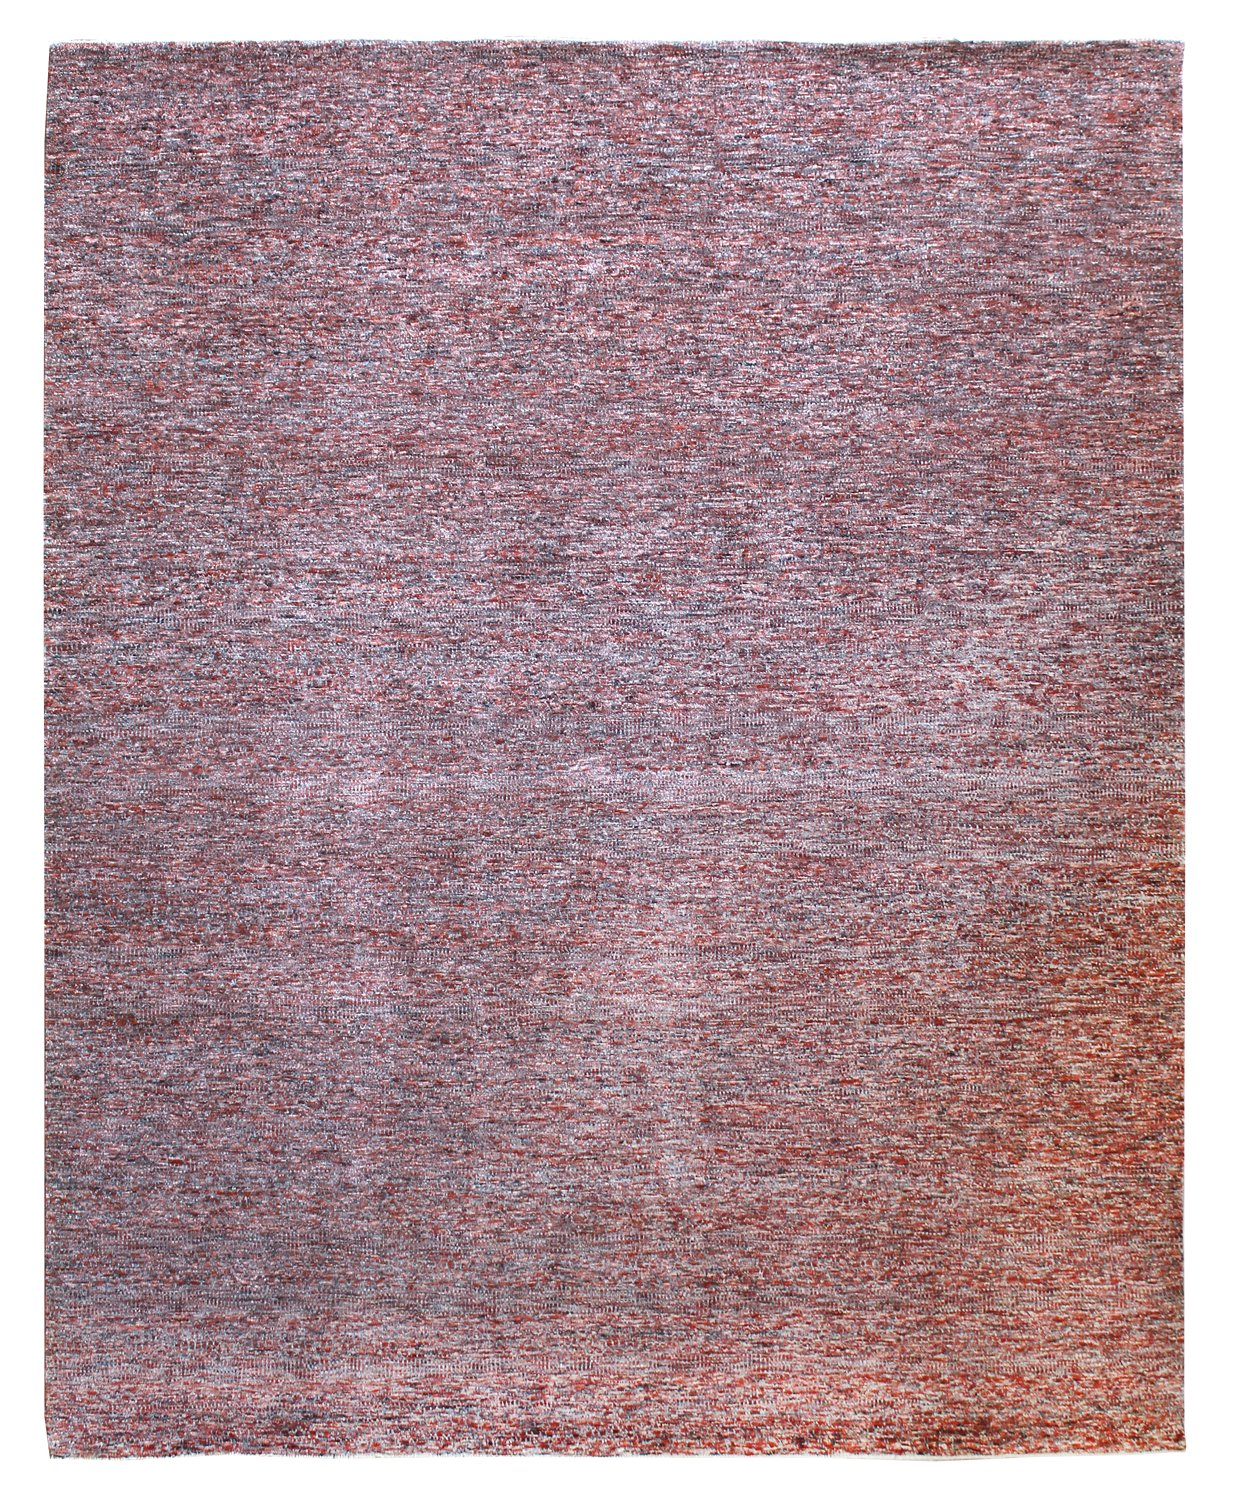 Illusion Handwoven Contemporary Rug